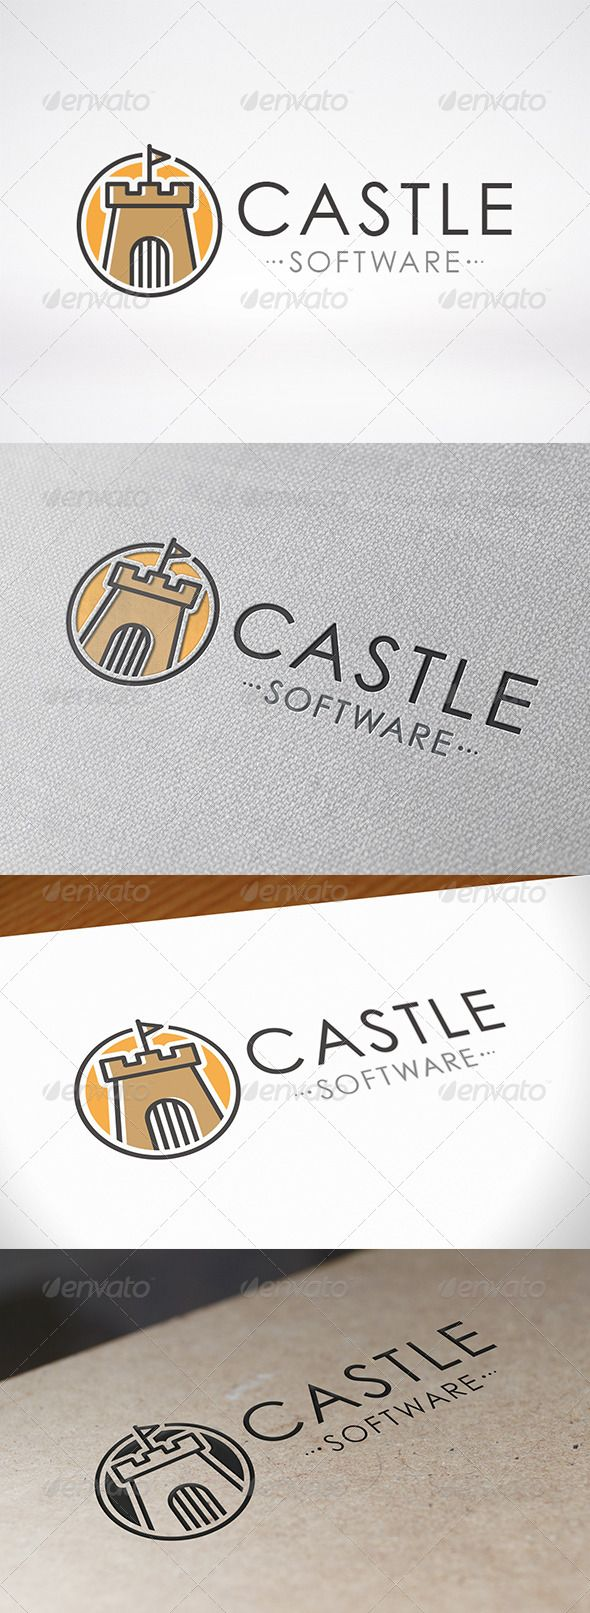 best 25+ castle logo ideas on pinterest | logos, logo design and